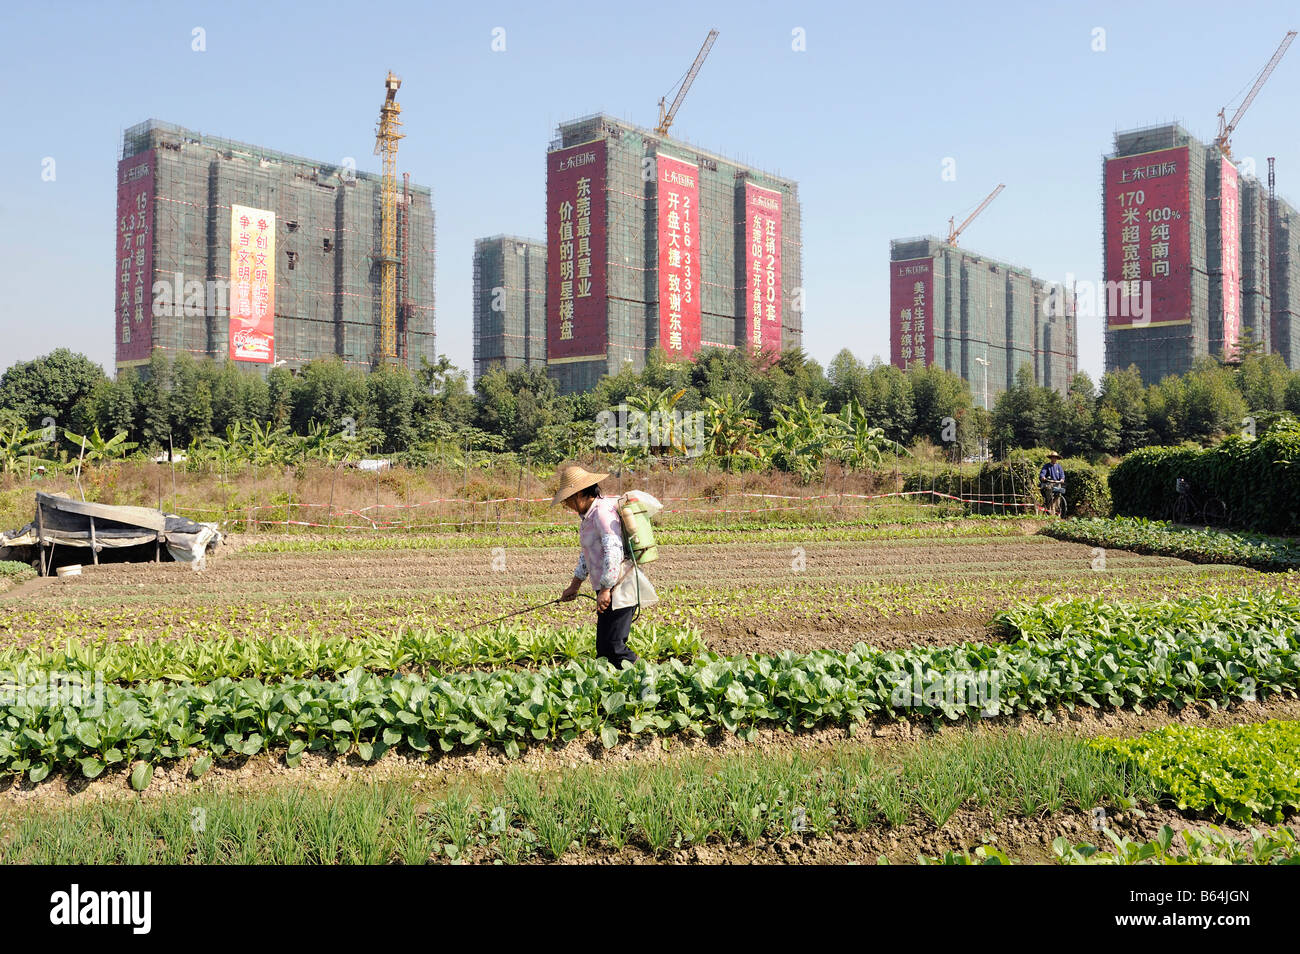 A farmer working in vegetables field in front of newly constructed apartment towers, Dongguang,Guangdong, China. - Stock Image